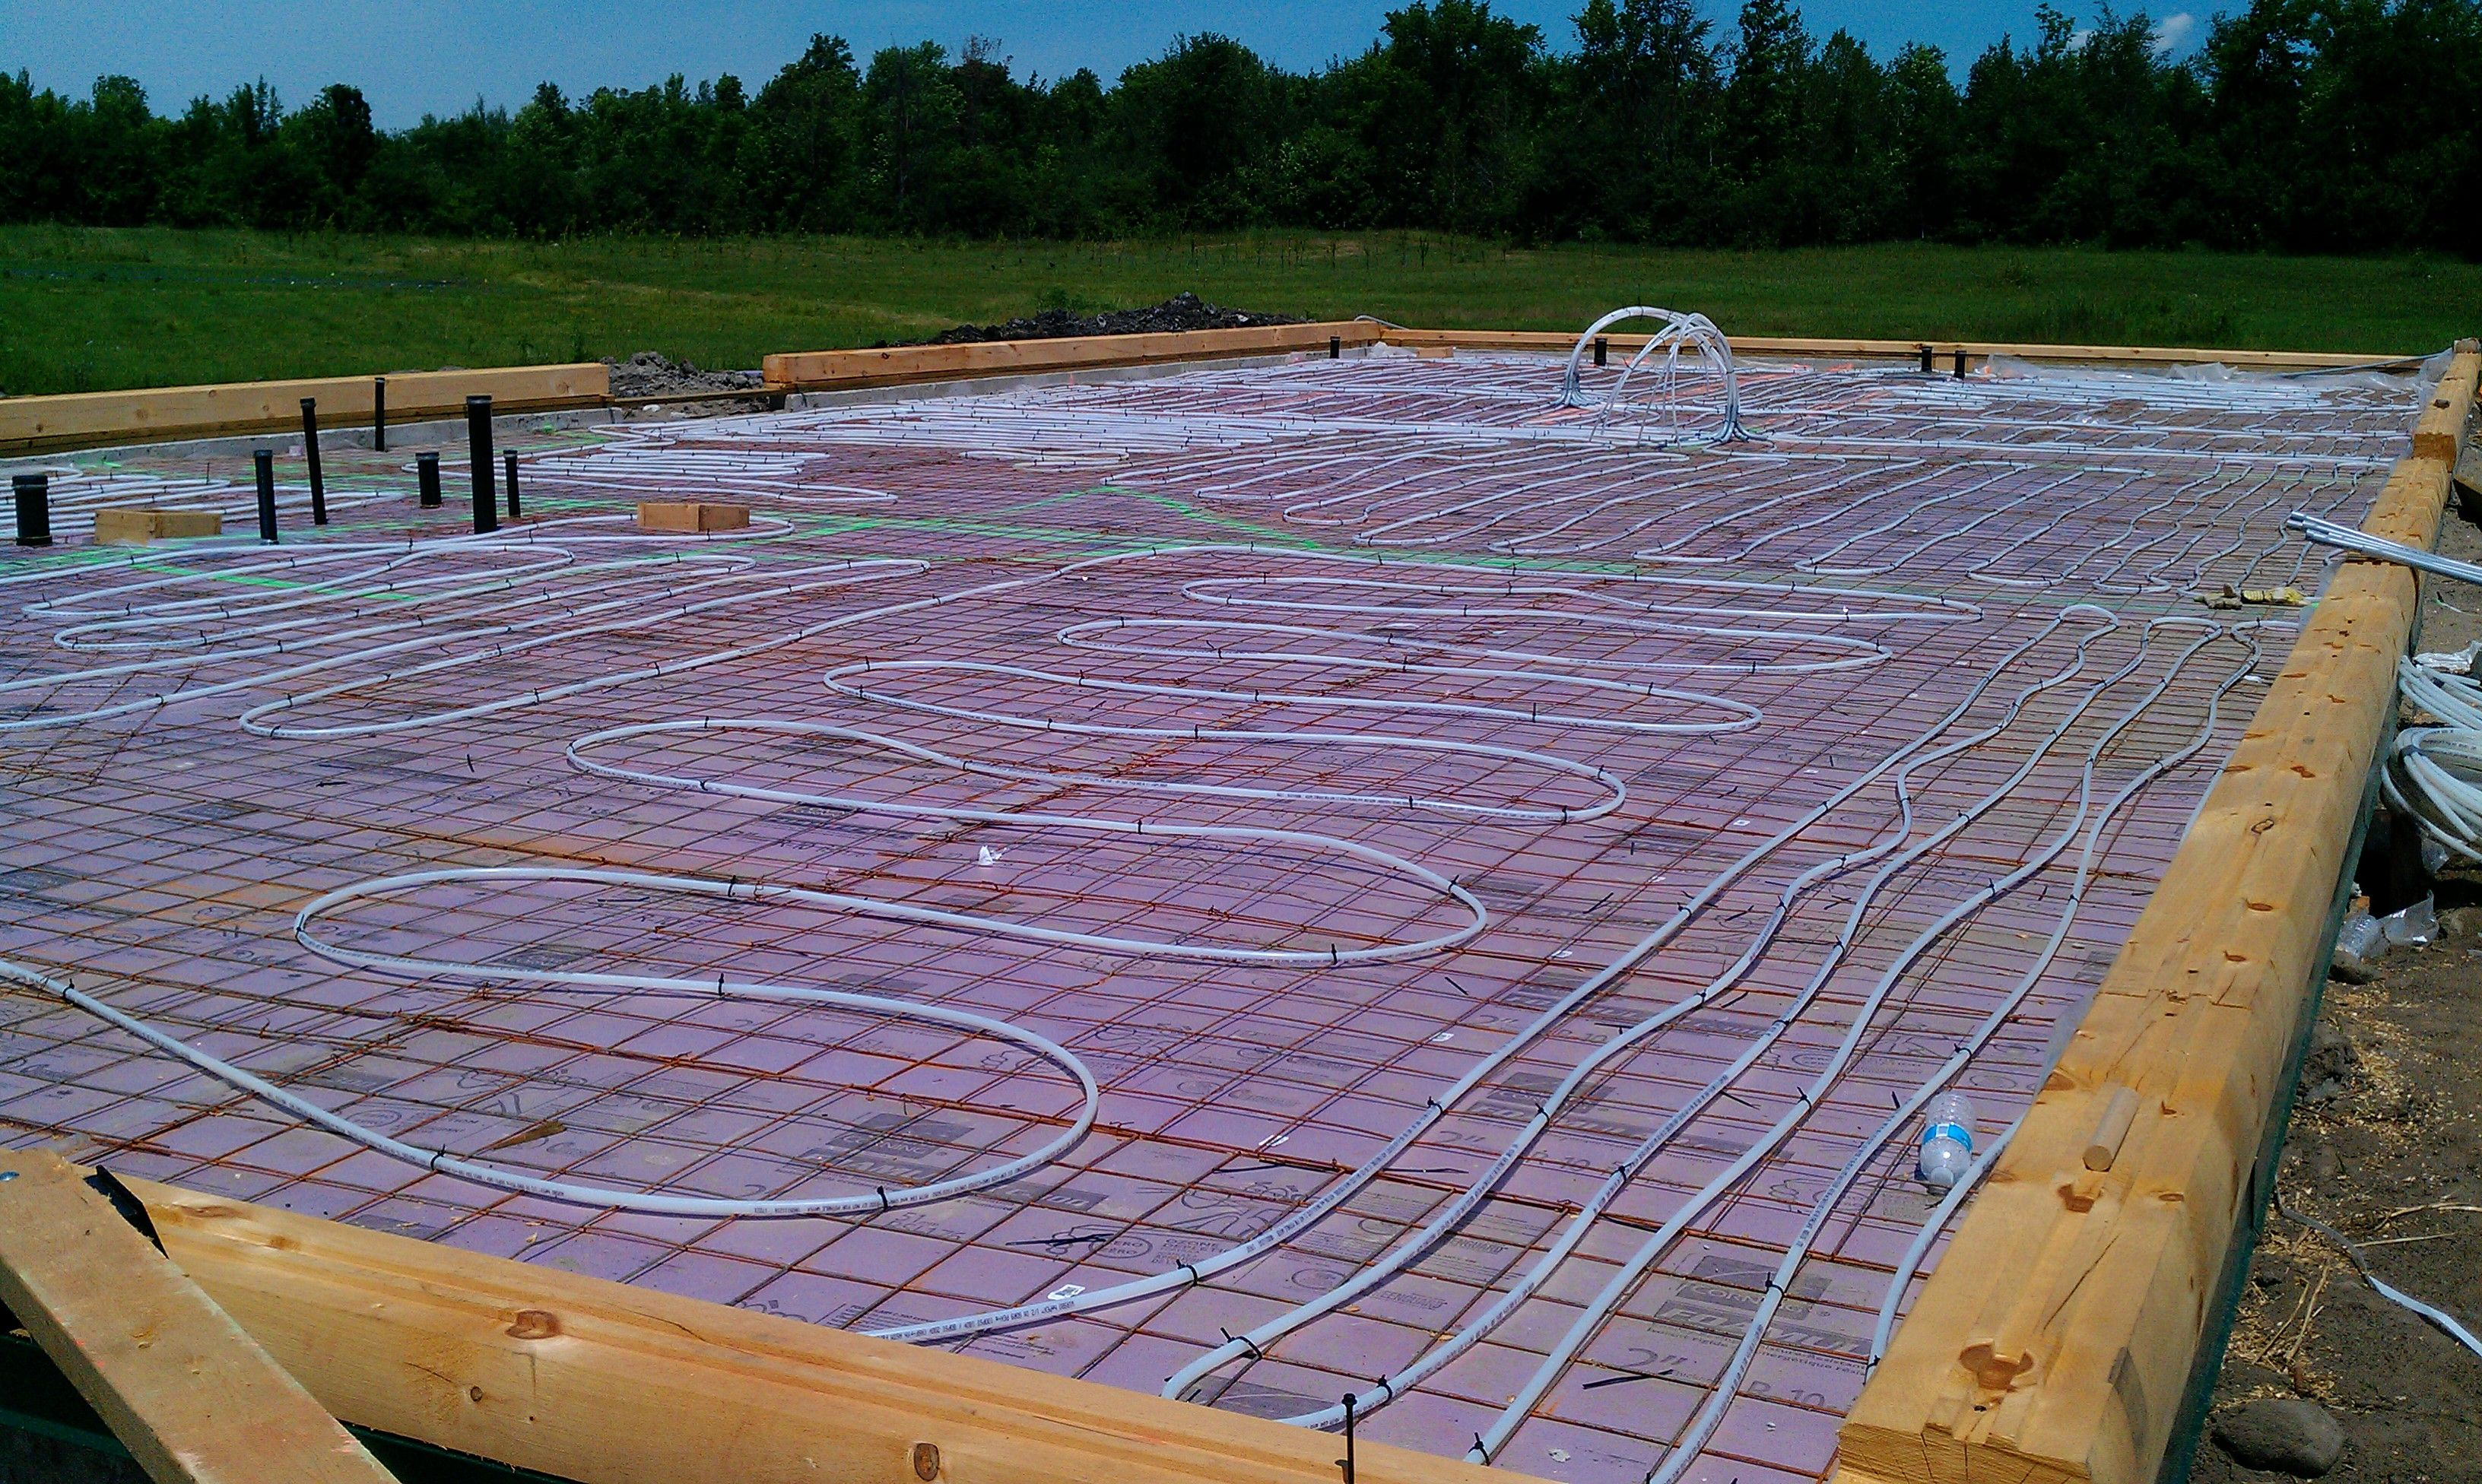 Radiant Floor Heating Lines For This Log Home In Ontario